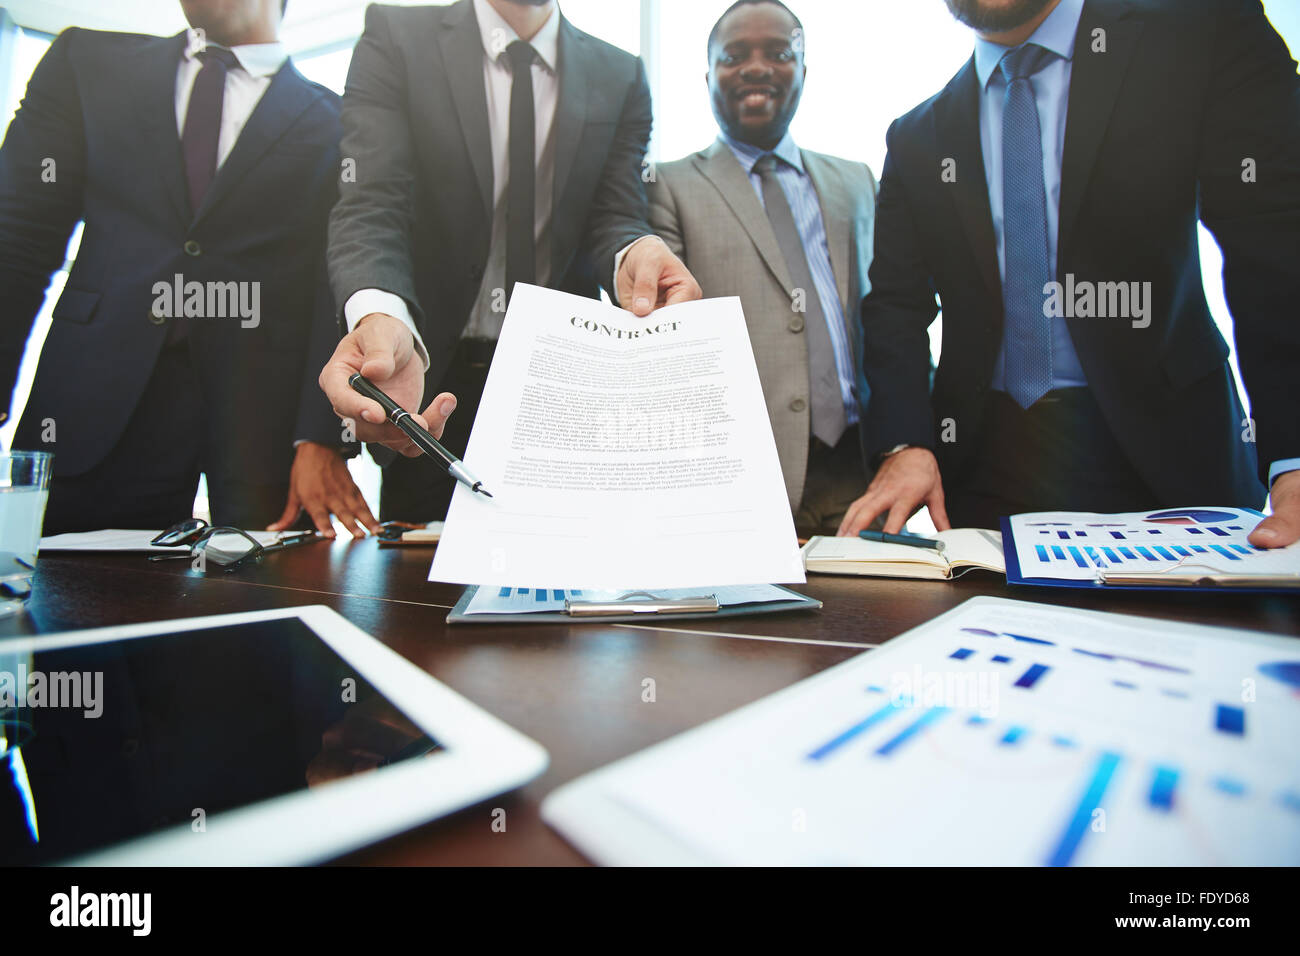 Group of employees offering you to sign business contract - Stock Image